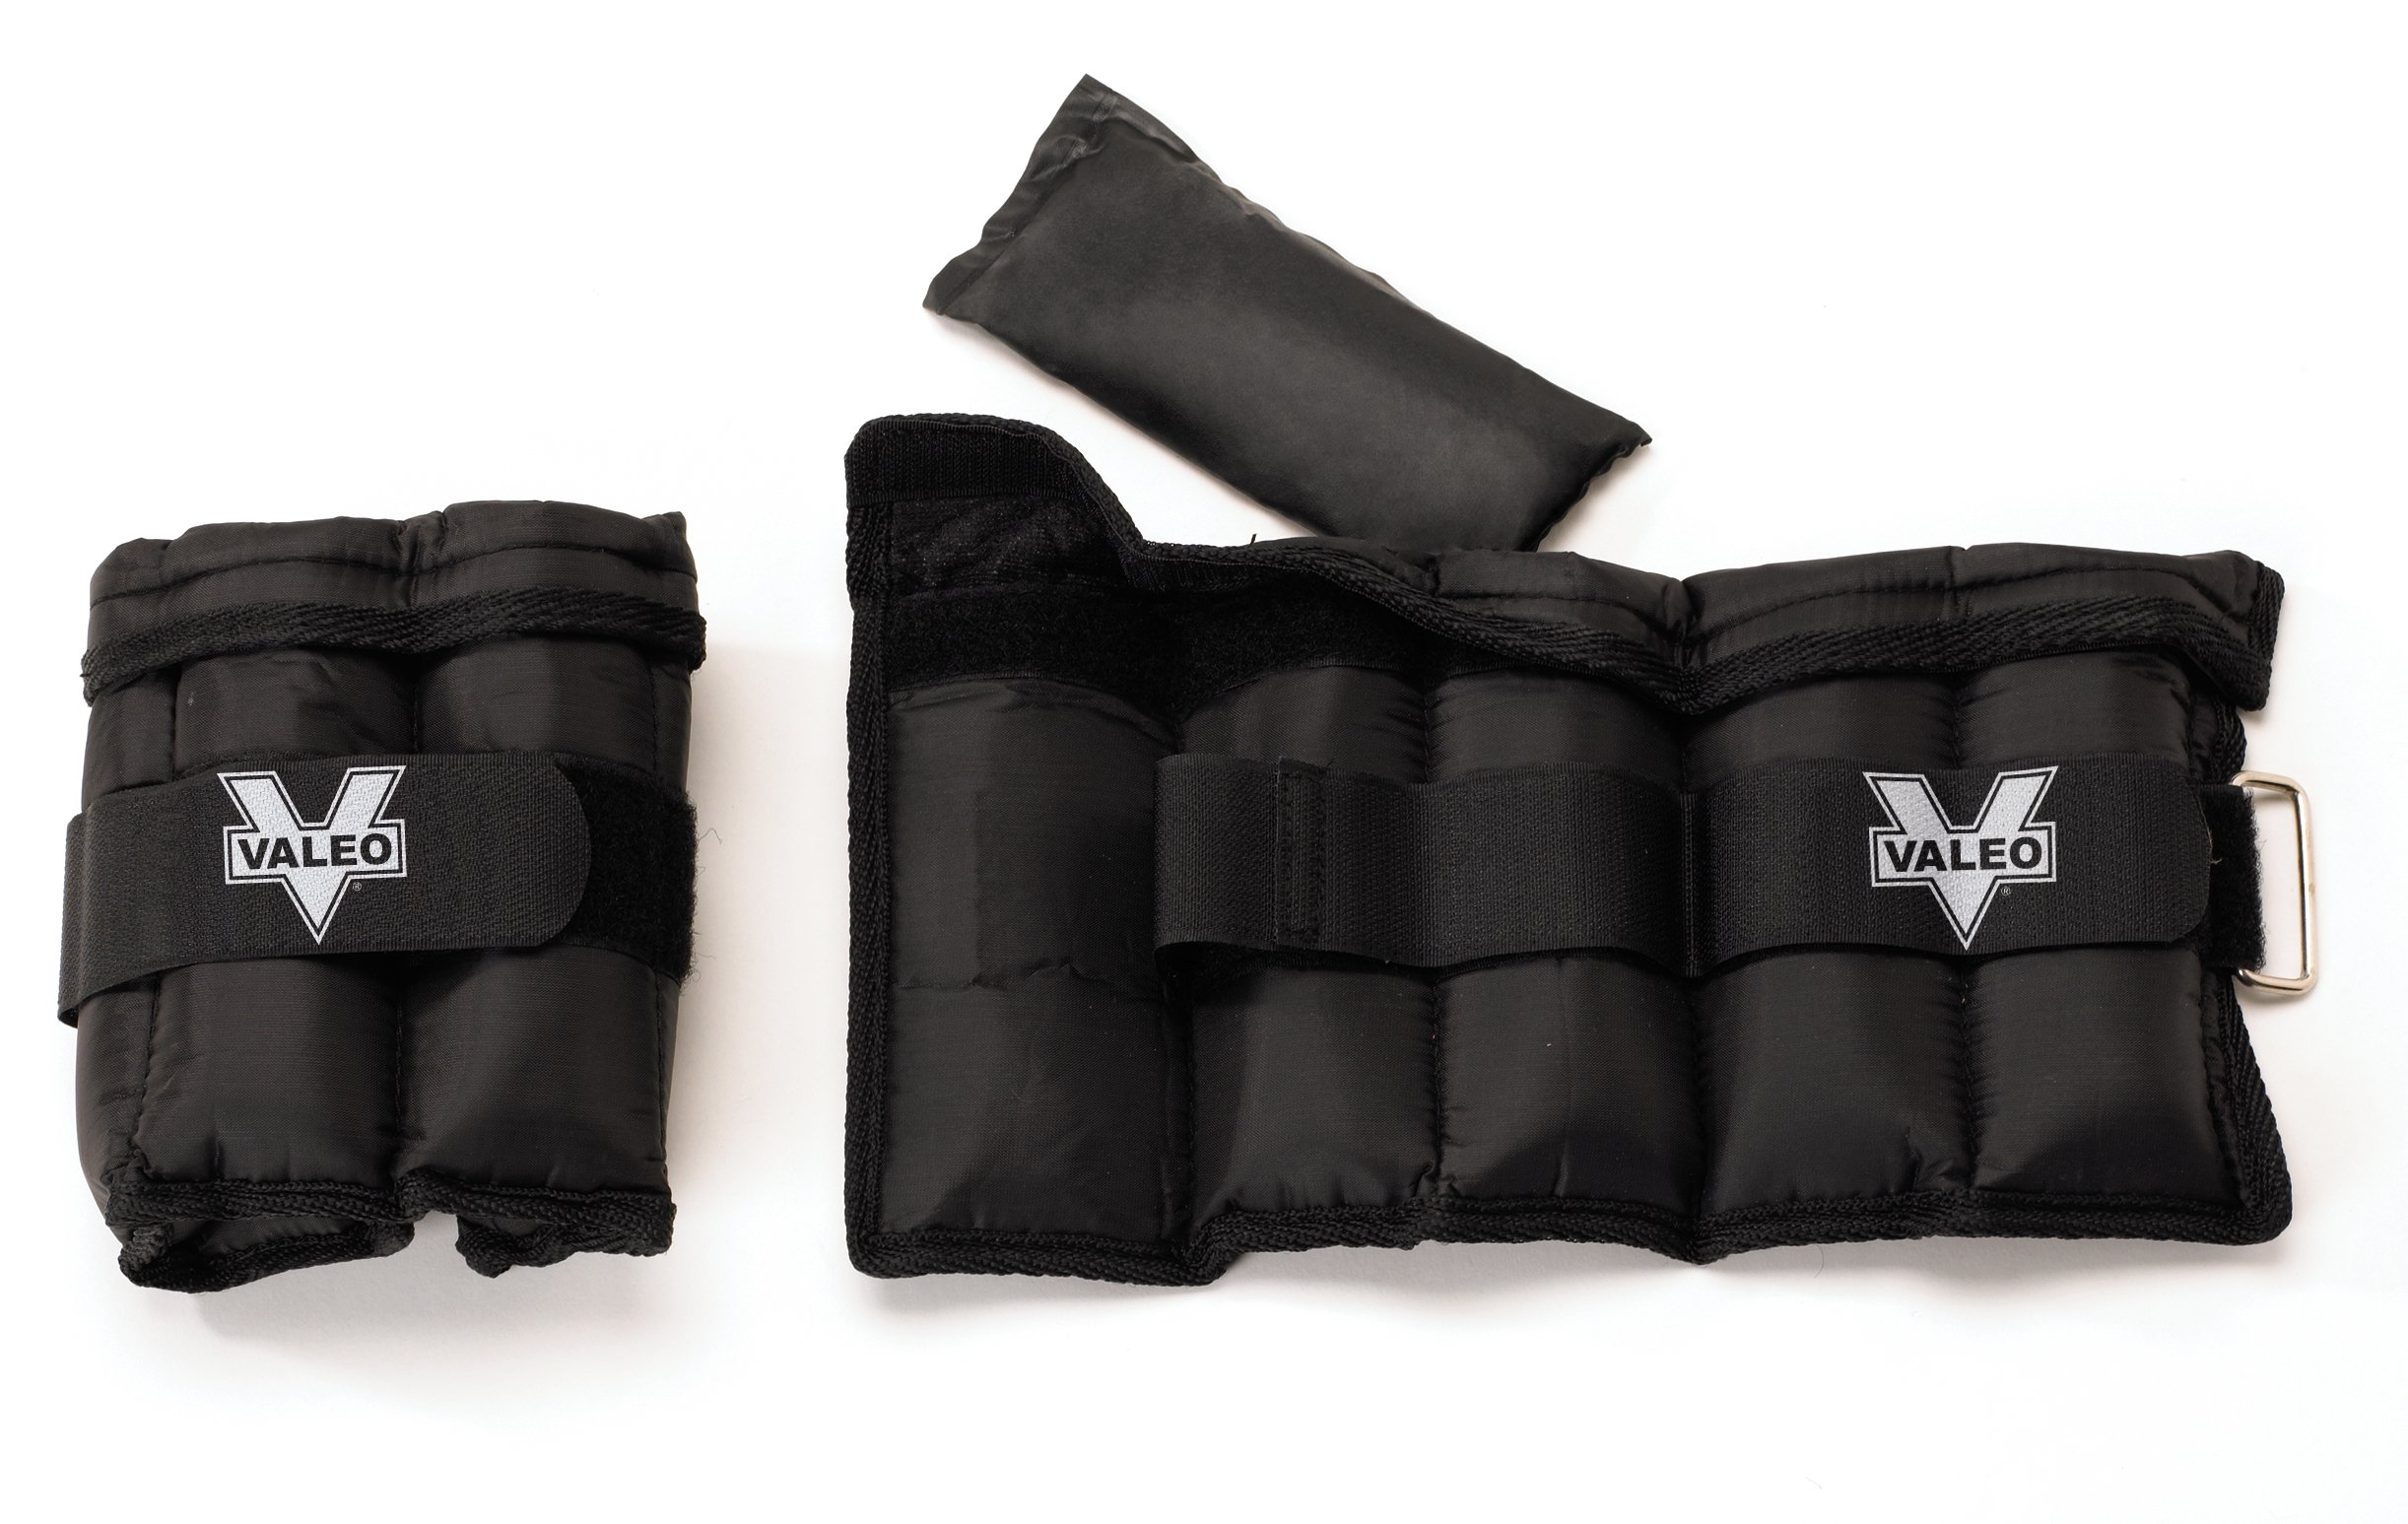 Valeo Adjustable Ankle/Wrist Weights - 5 lbs Total (2.5 lbs each), 1 Size Fits Most by Valeo